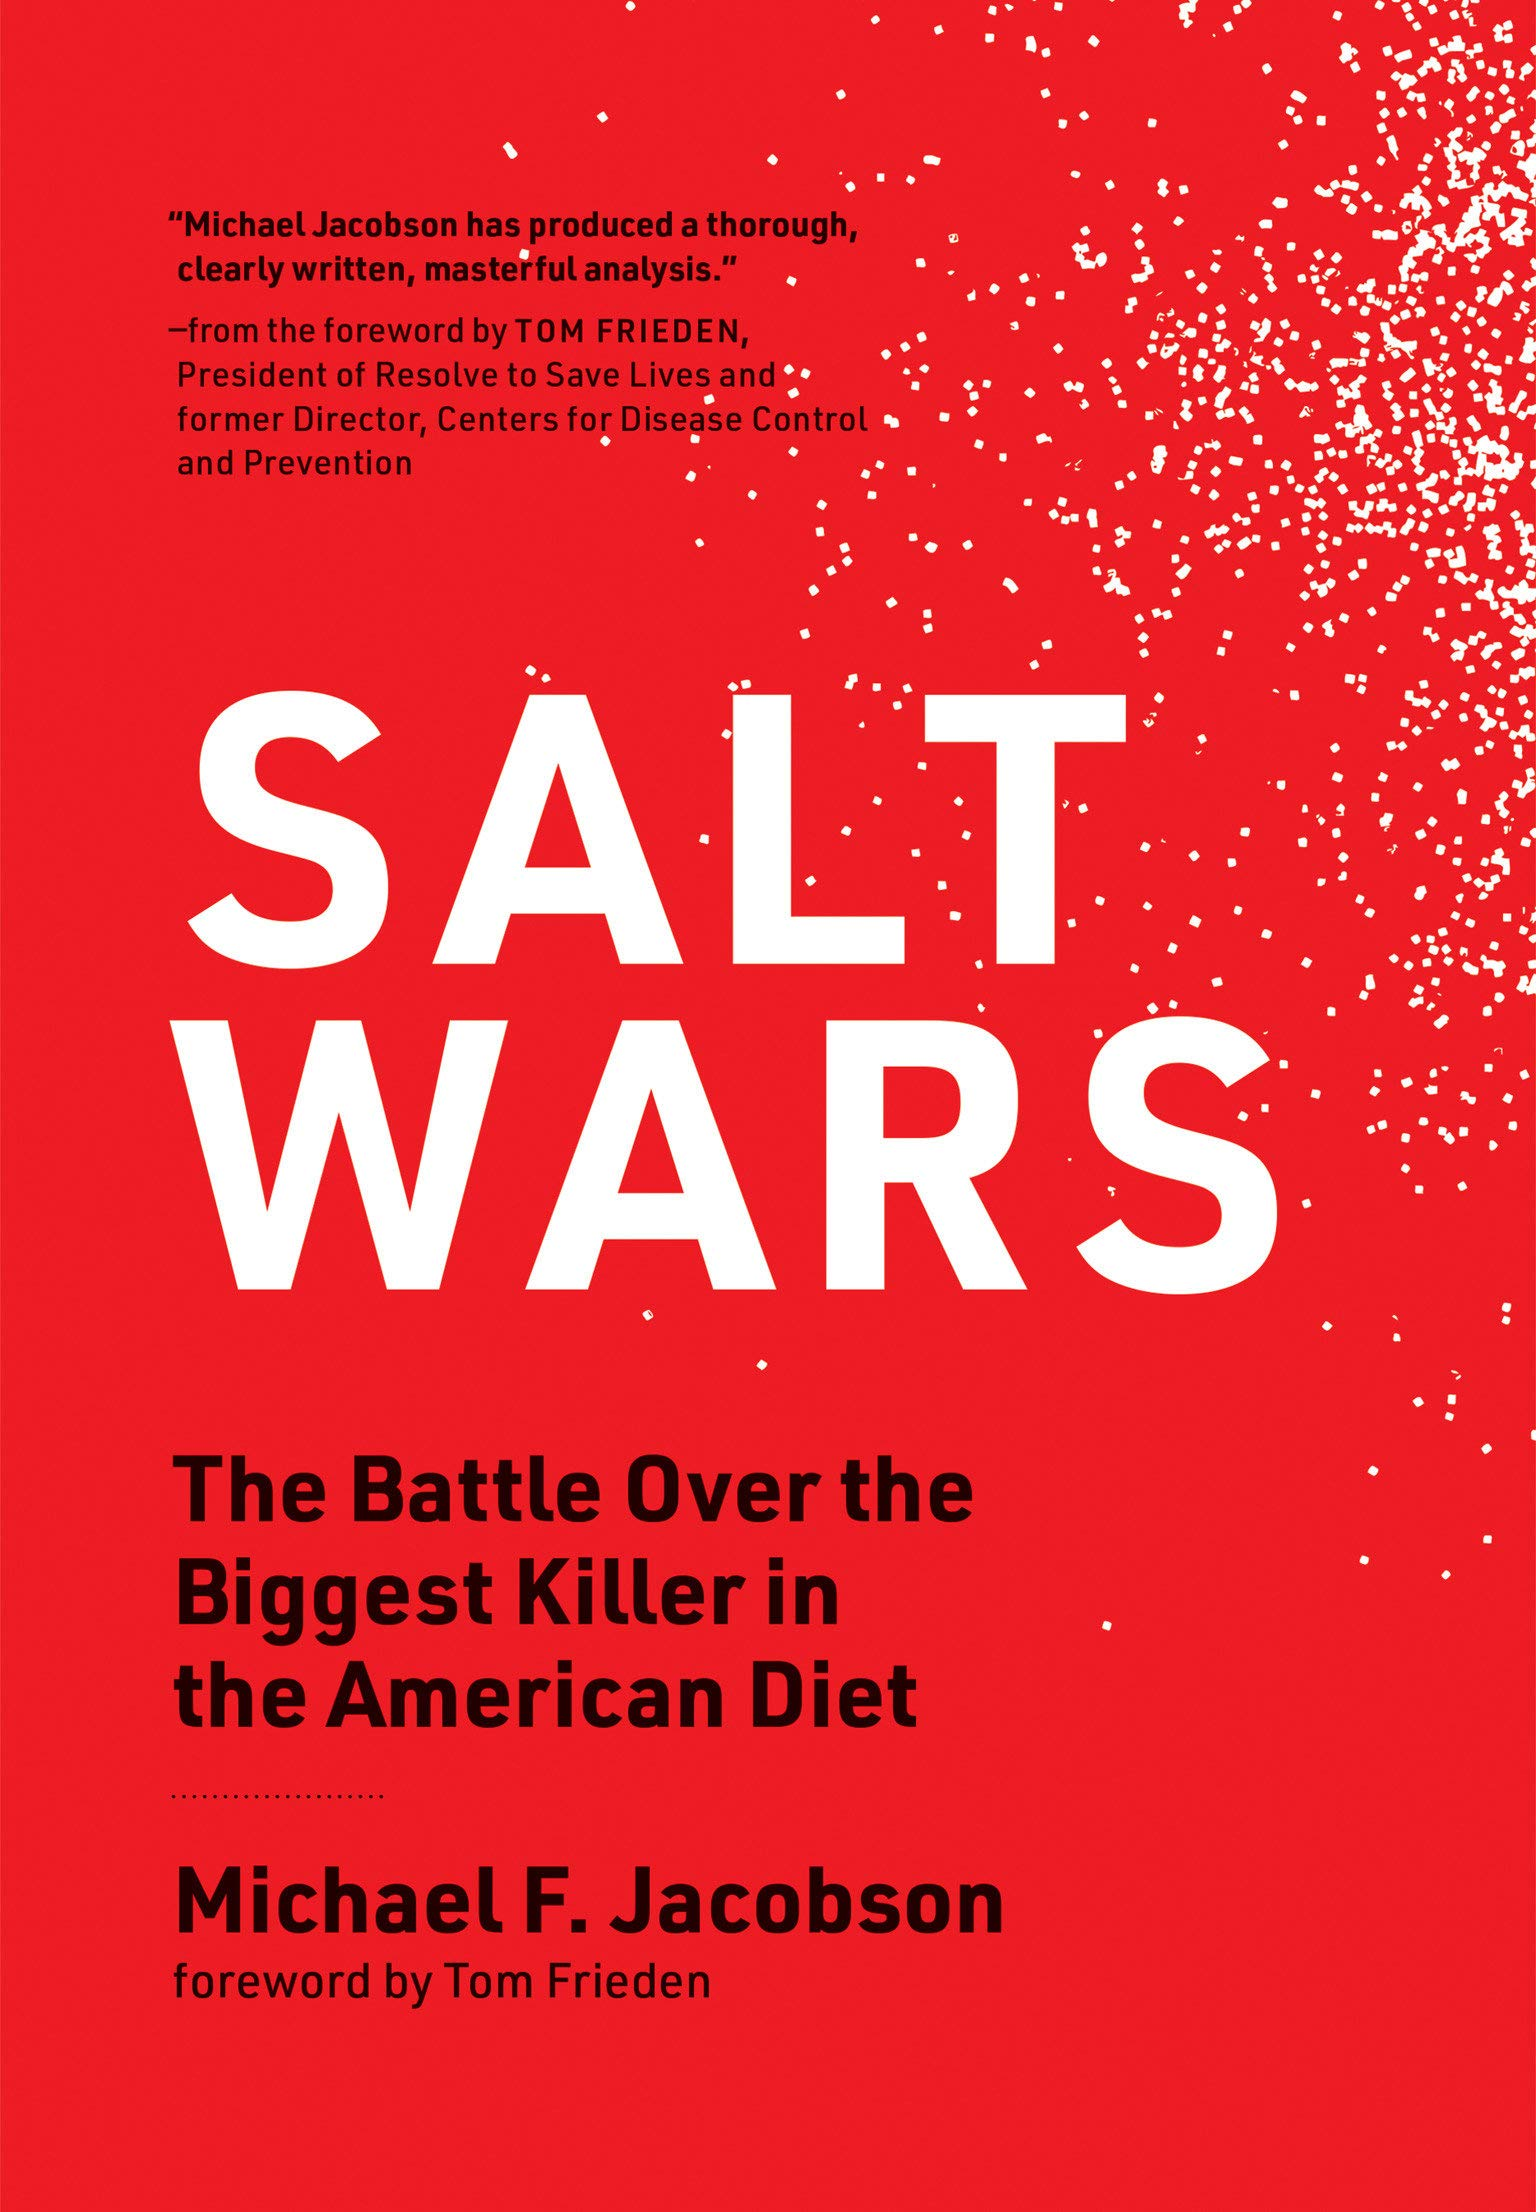 Salt Wars: The Battle Over the Biggest Killer in the American Diet